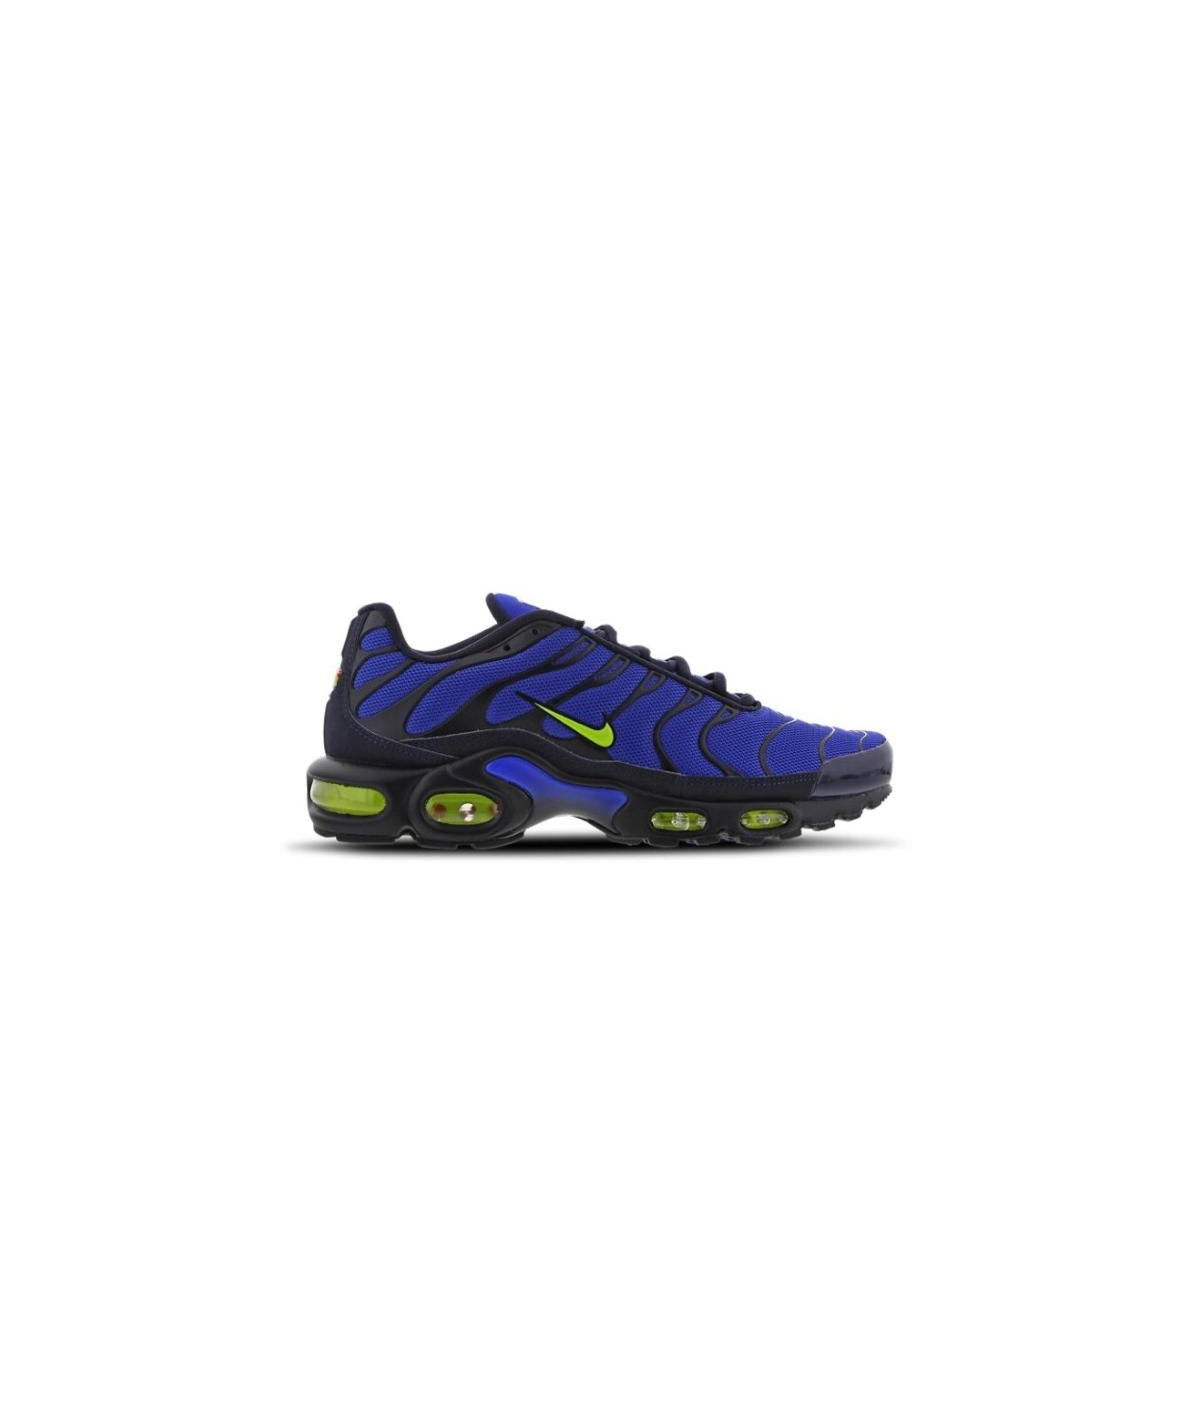 Nike Tn Bleu I Air Max Guadeloupe I Sneakers Authentique